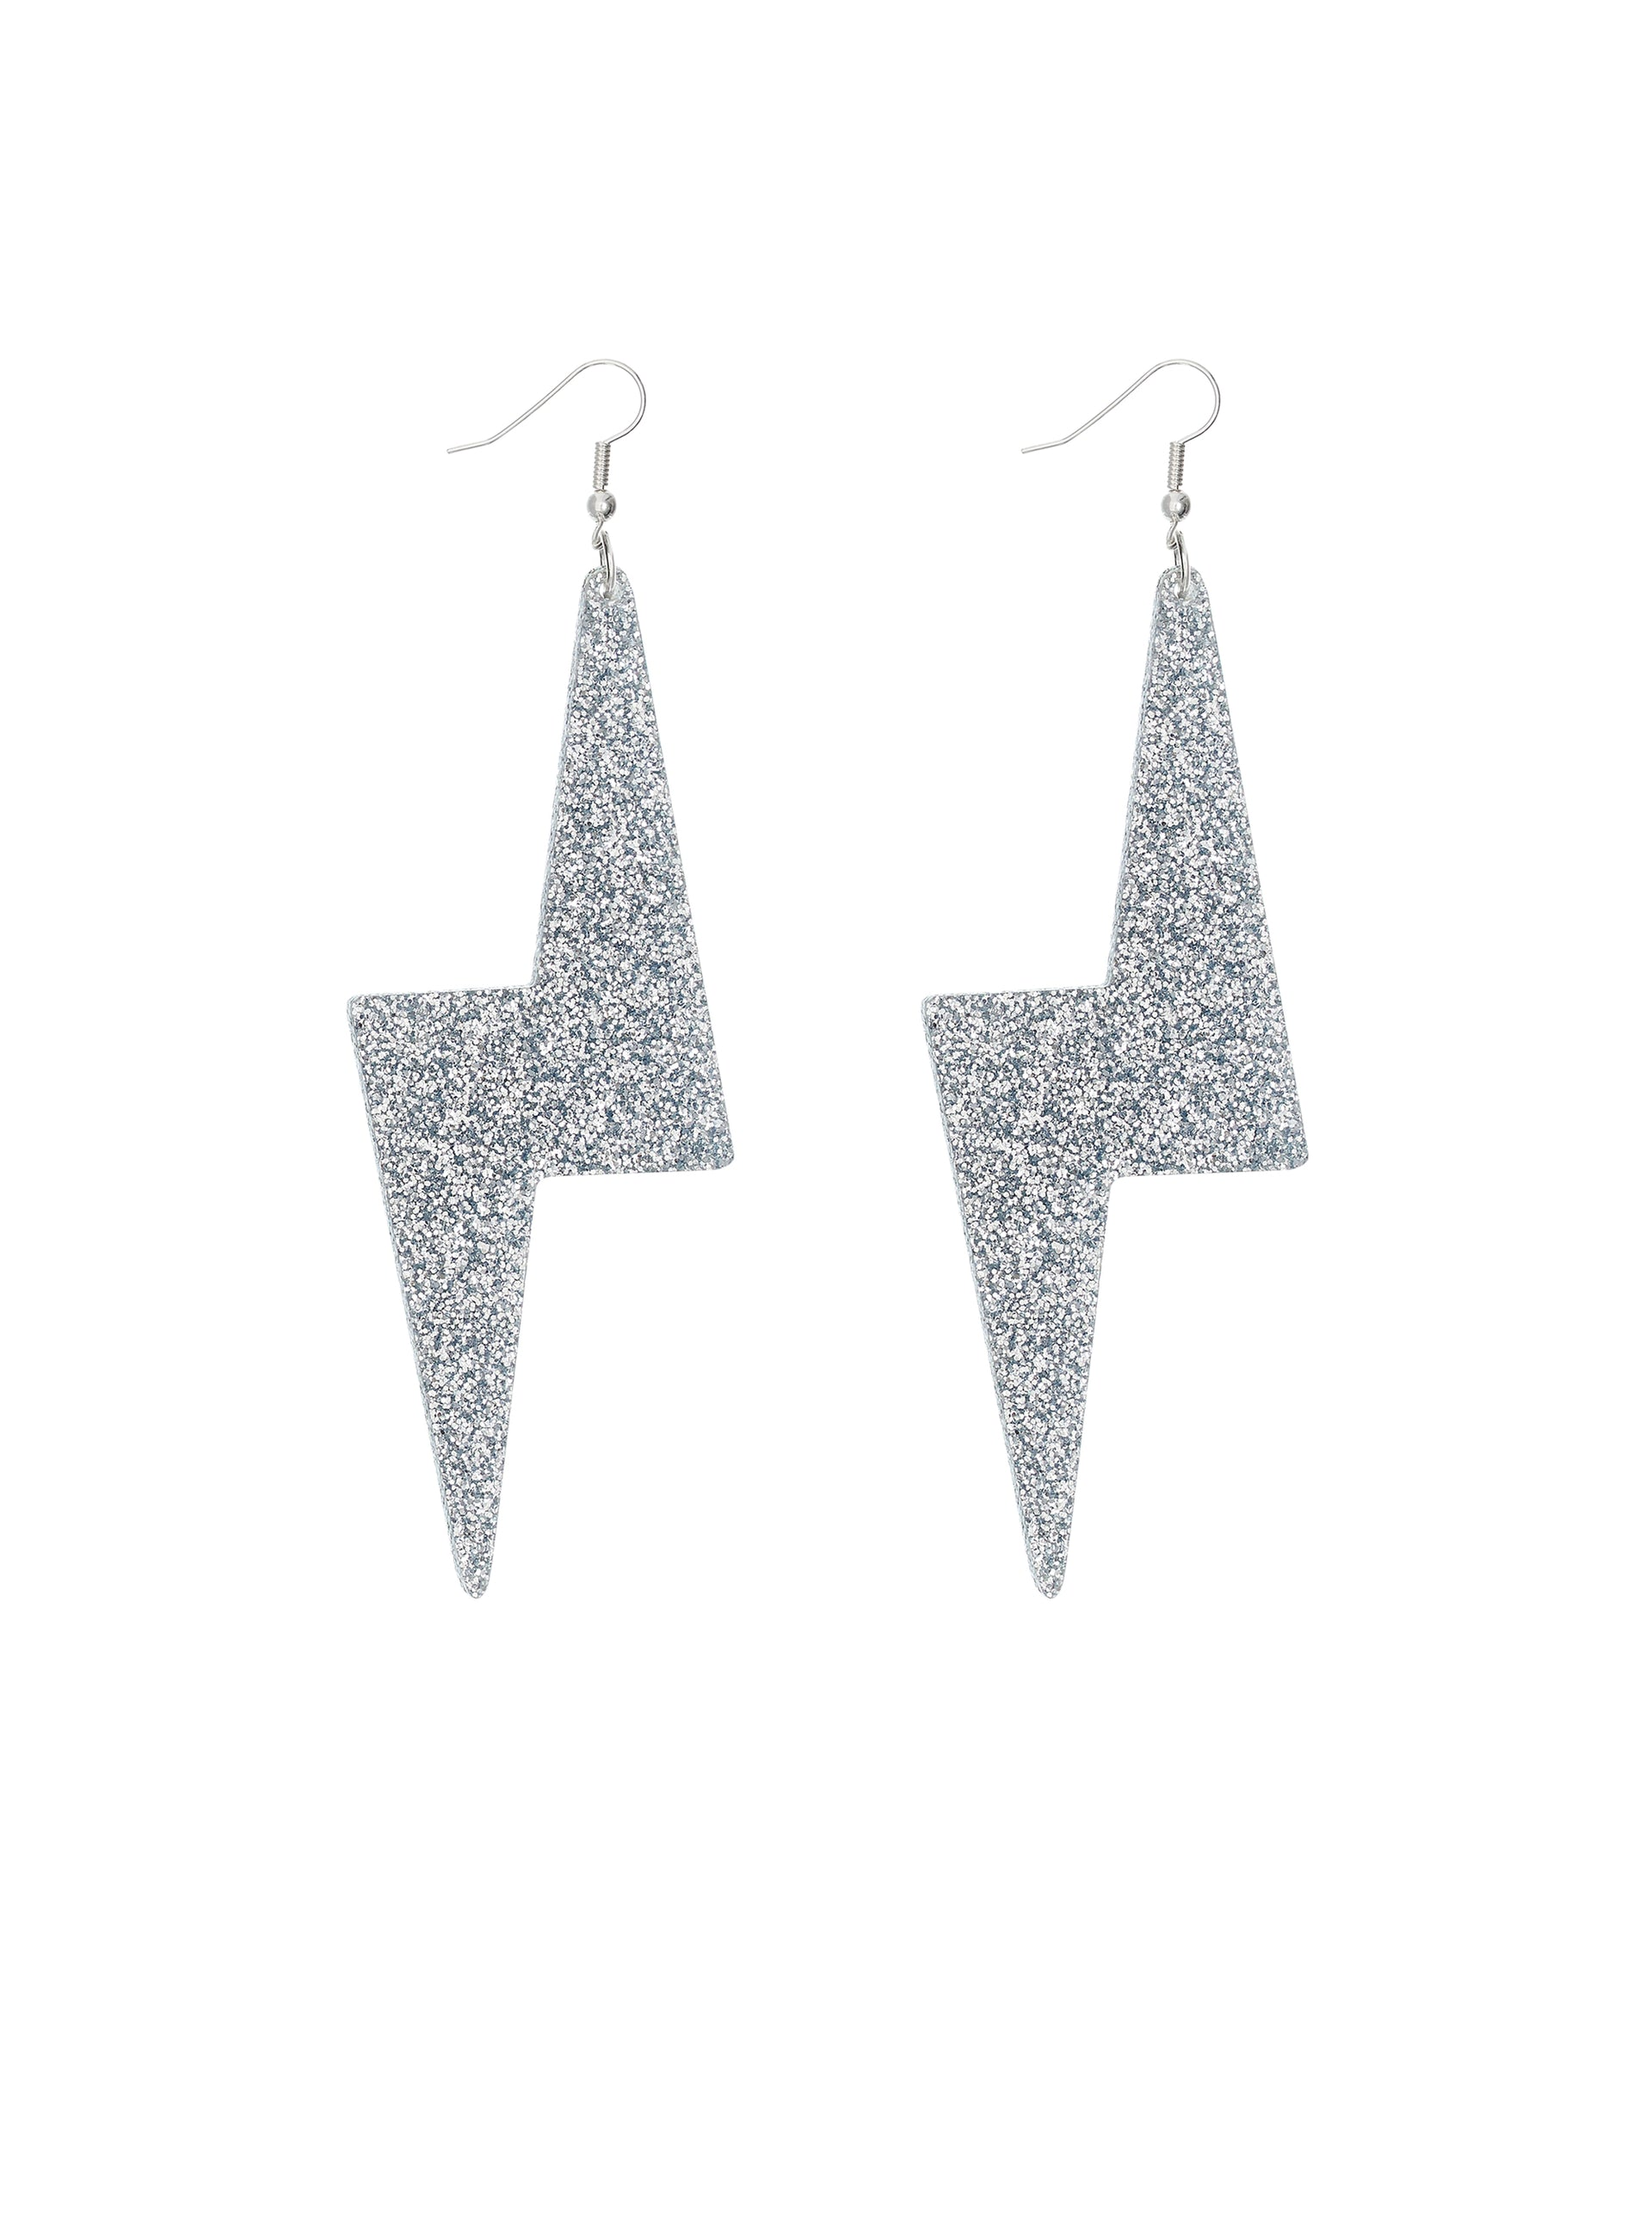 Bolt Earrings - Silver Glitter